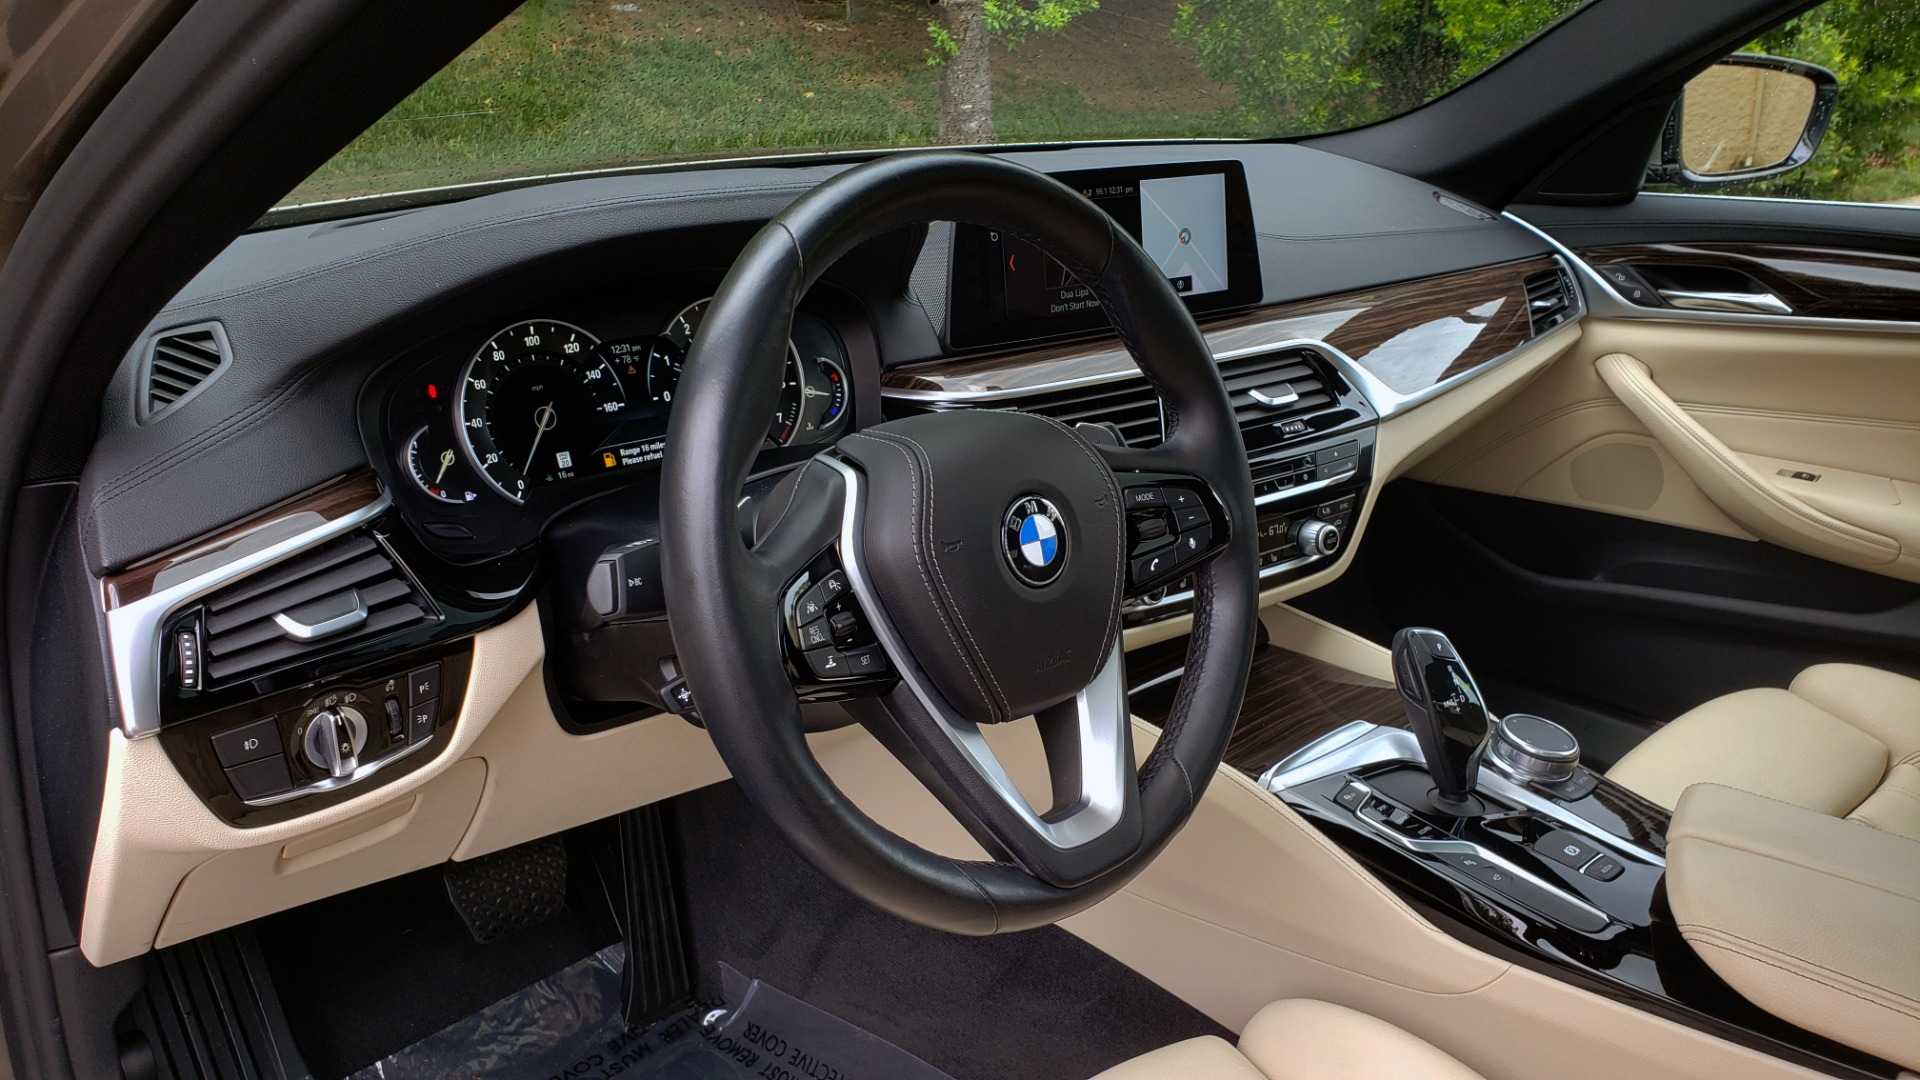 Used 2017 BMW 5 SERIES 530I PREMIUM / NAV / SUNROOF / DRVR ASST PLUS II / LUXURY for sale Sold at Formula Imports in Charlotte NC 28227 37